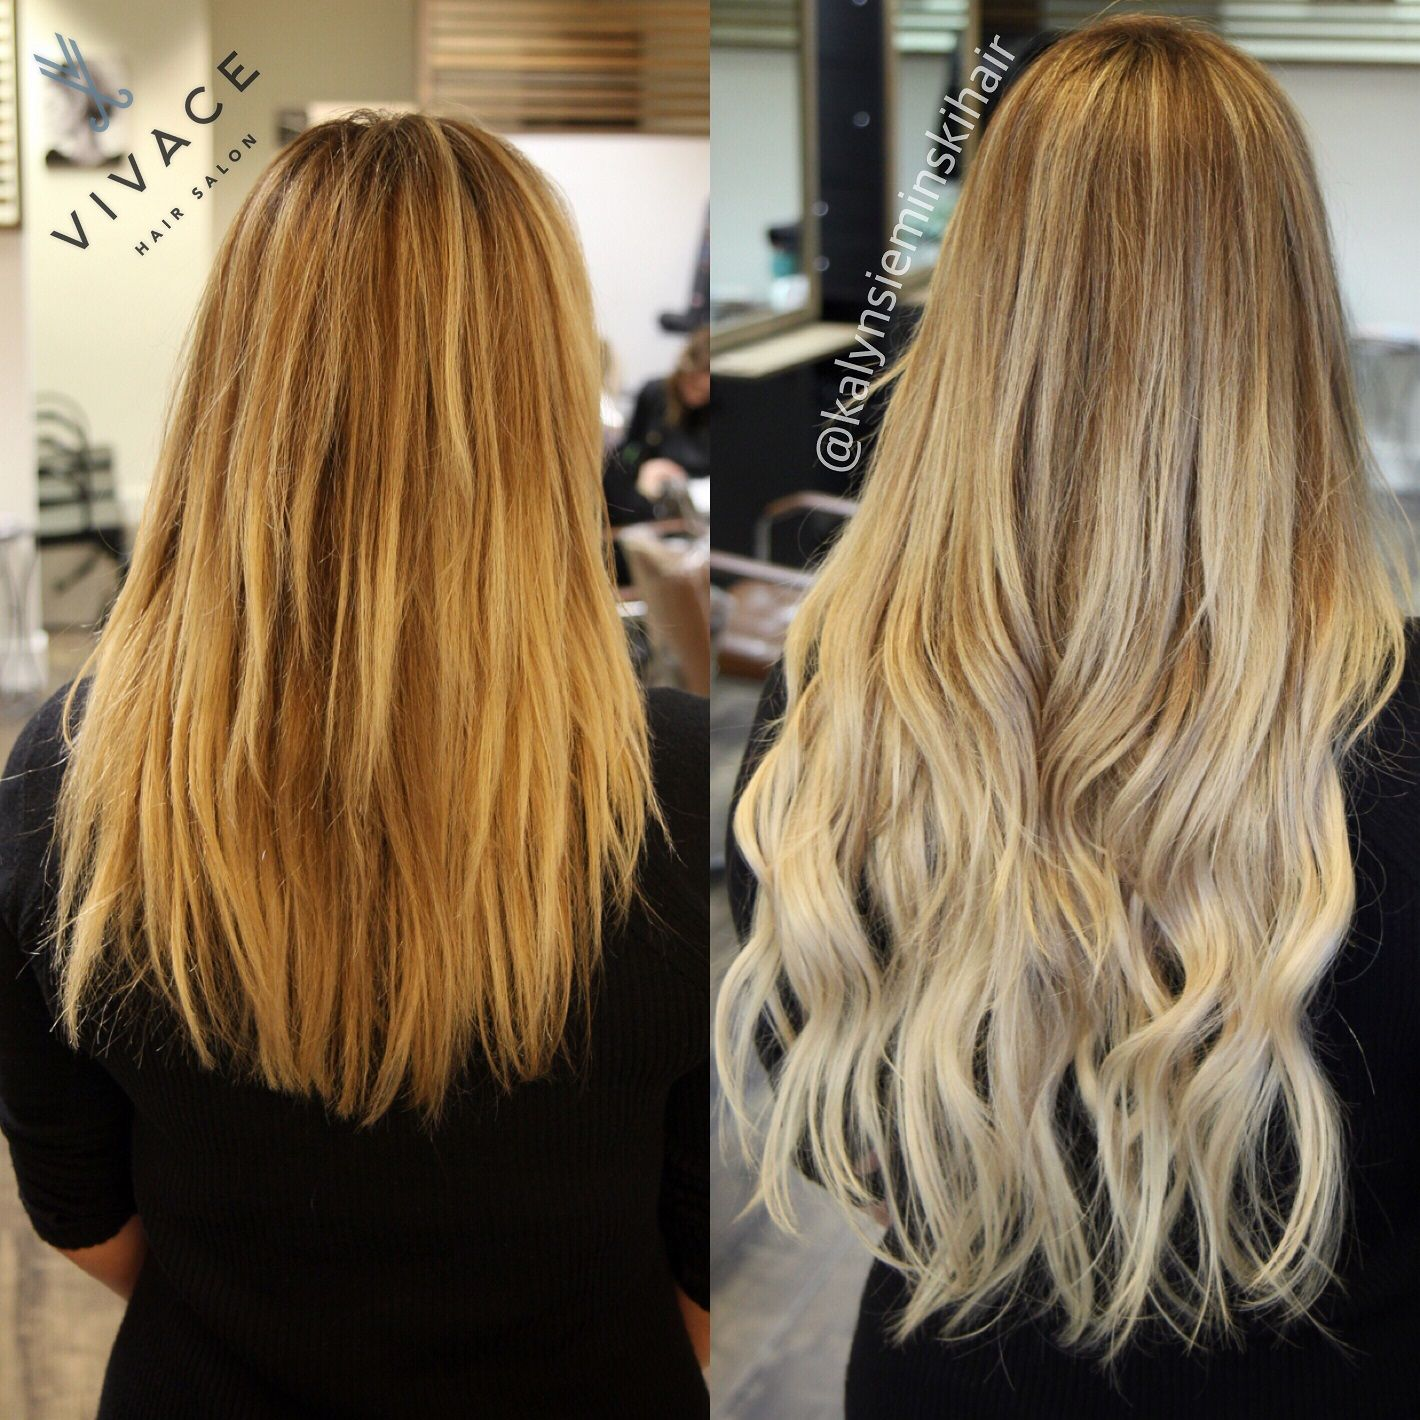 Hair extensions installation by kalyn sieminski length volume hair extensions installation by kalyn sieminski length volume seamless blend pmusecretfo Choice Image